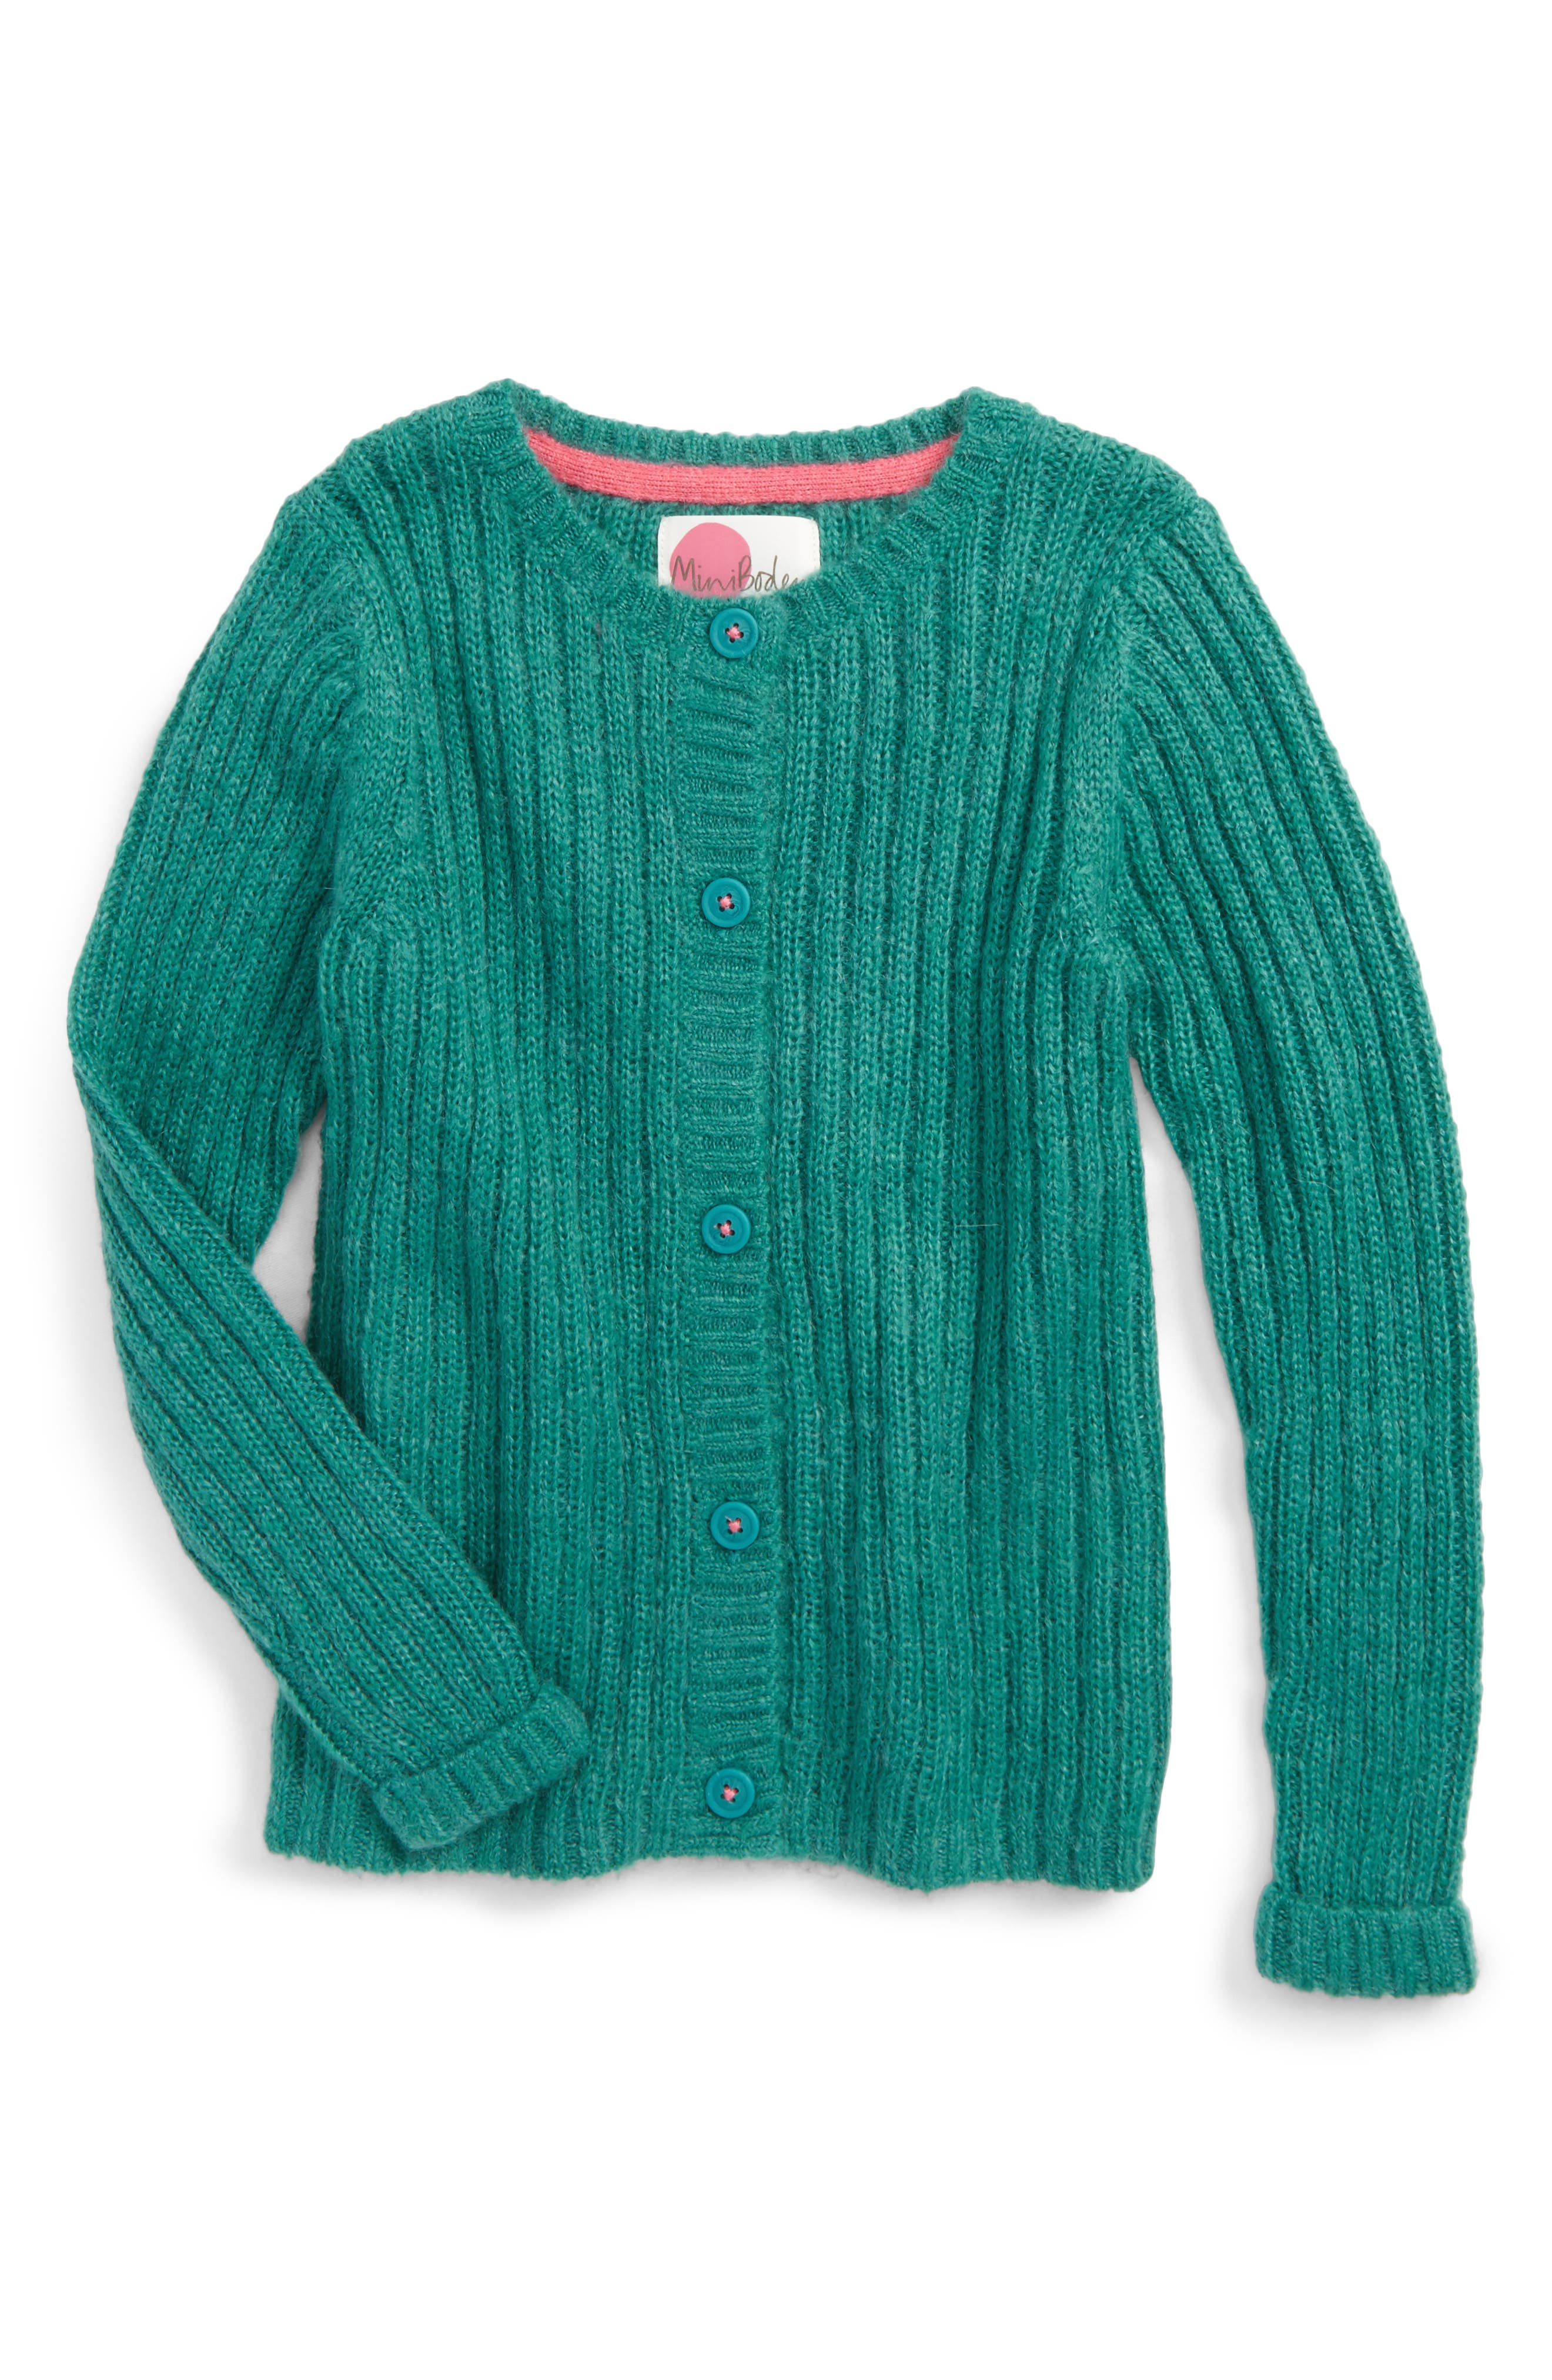 Main Image - Mini Boden Cosy Everyday Cardigan (Toddler Girls, Little Girls & Big Girls)